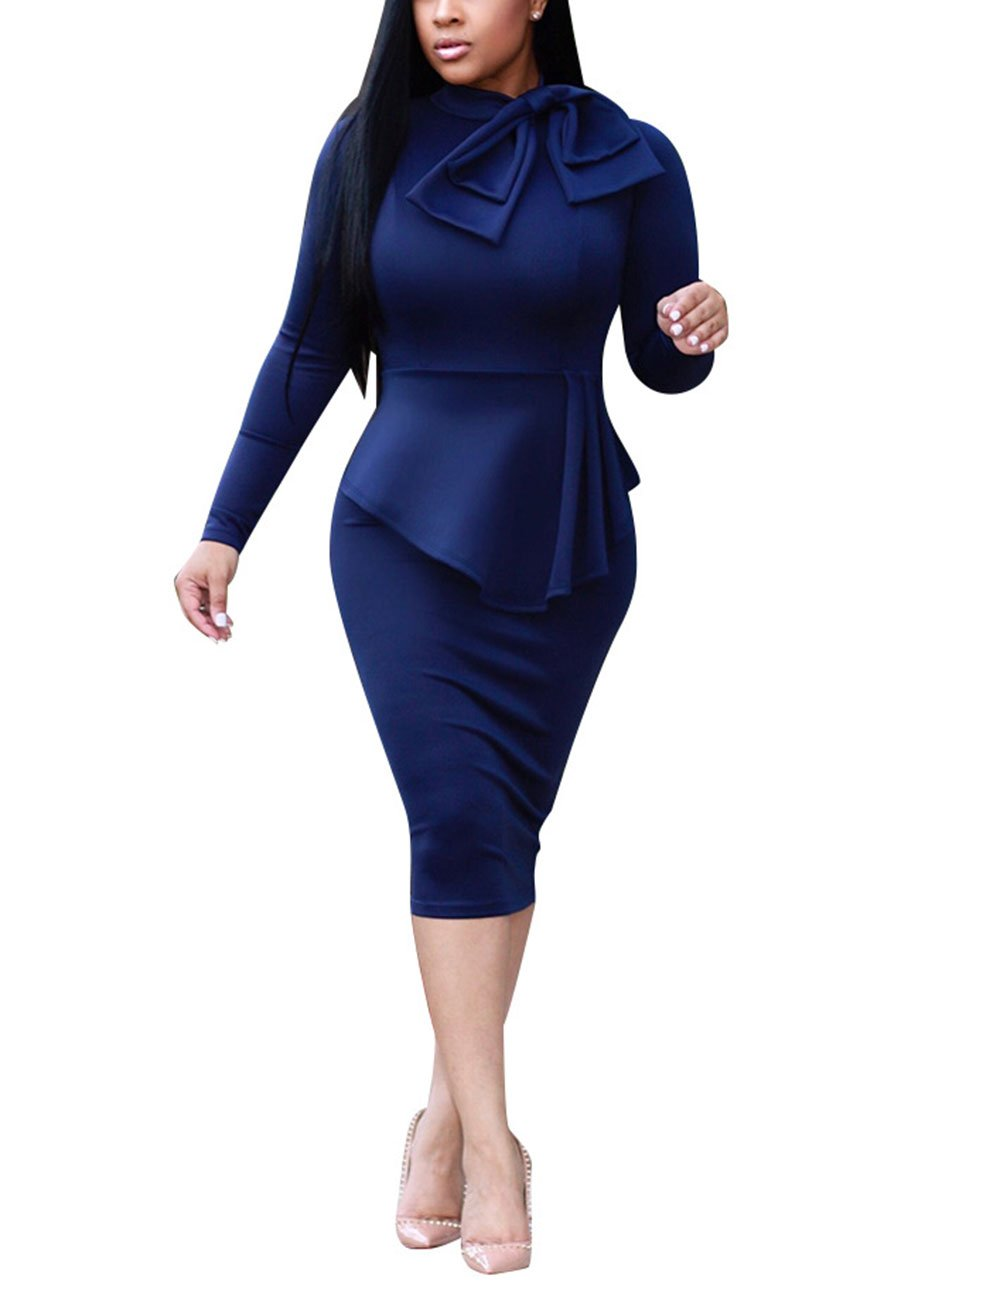 Autumn Solid Business Suit Peplum Midi Skirt Outfit for Ladies Navy Blue XL